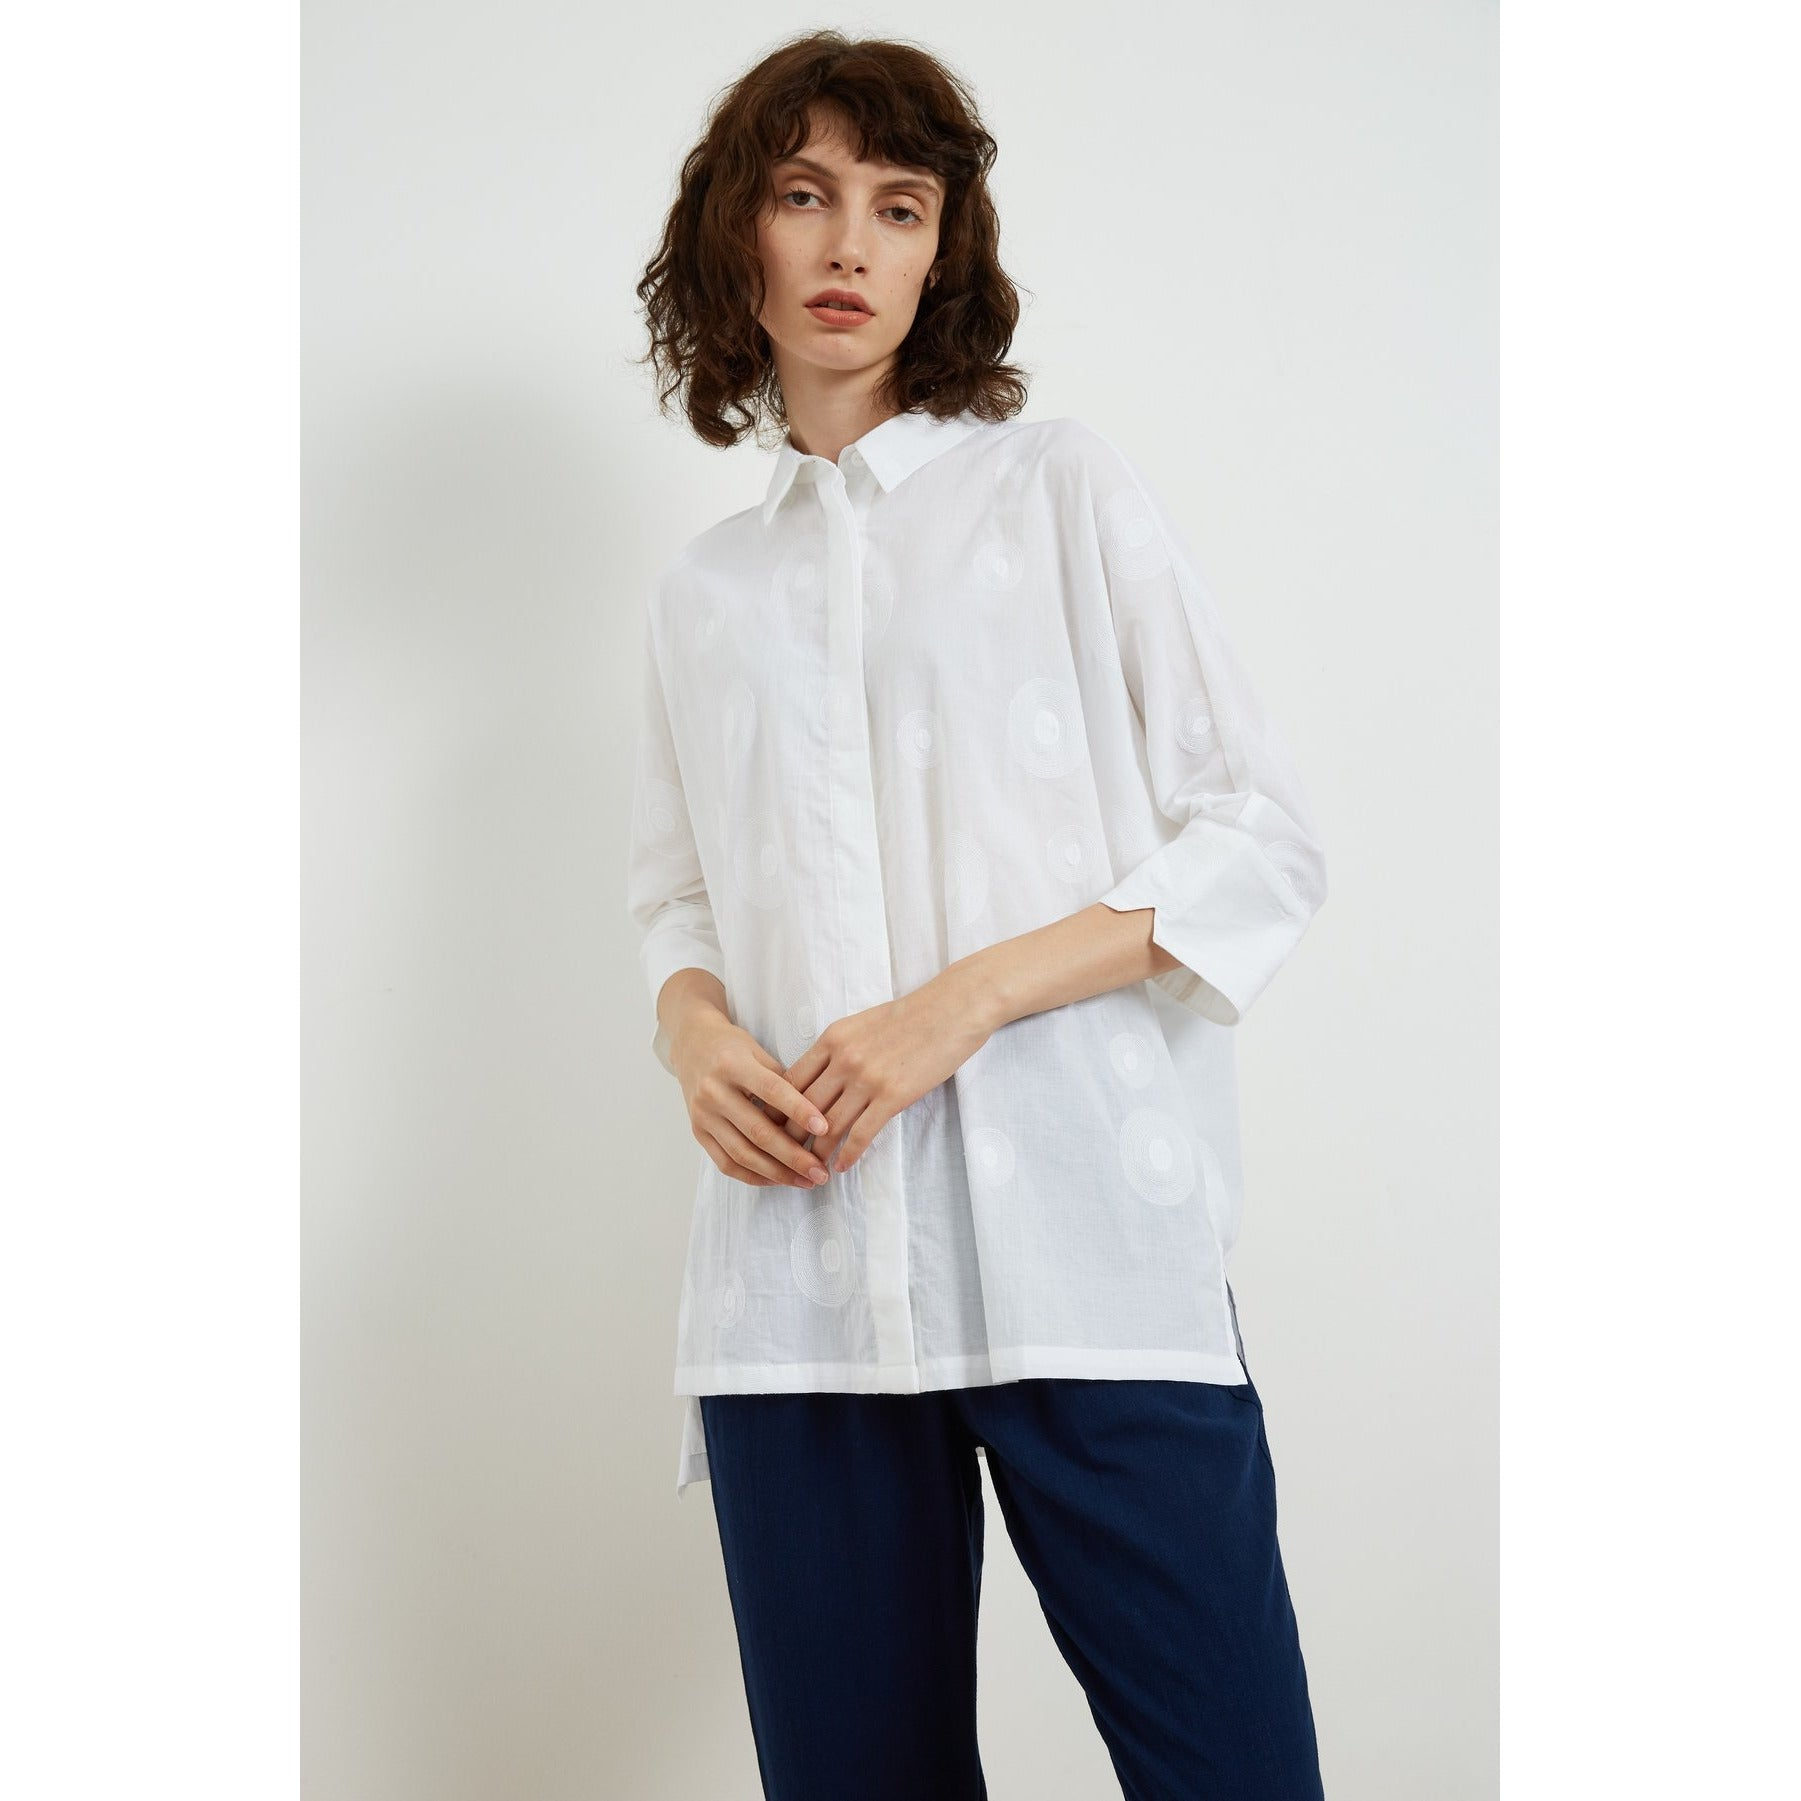 Tirelli Three Quarter sleeve Embroidered Shirt in White